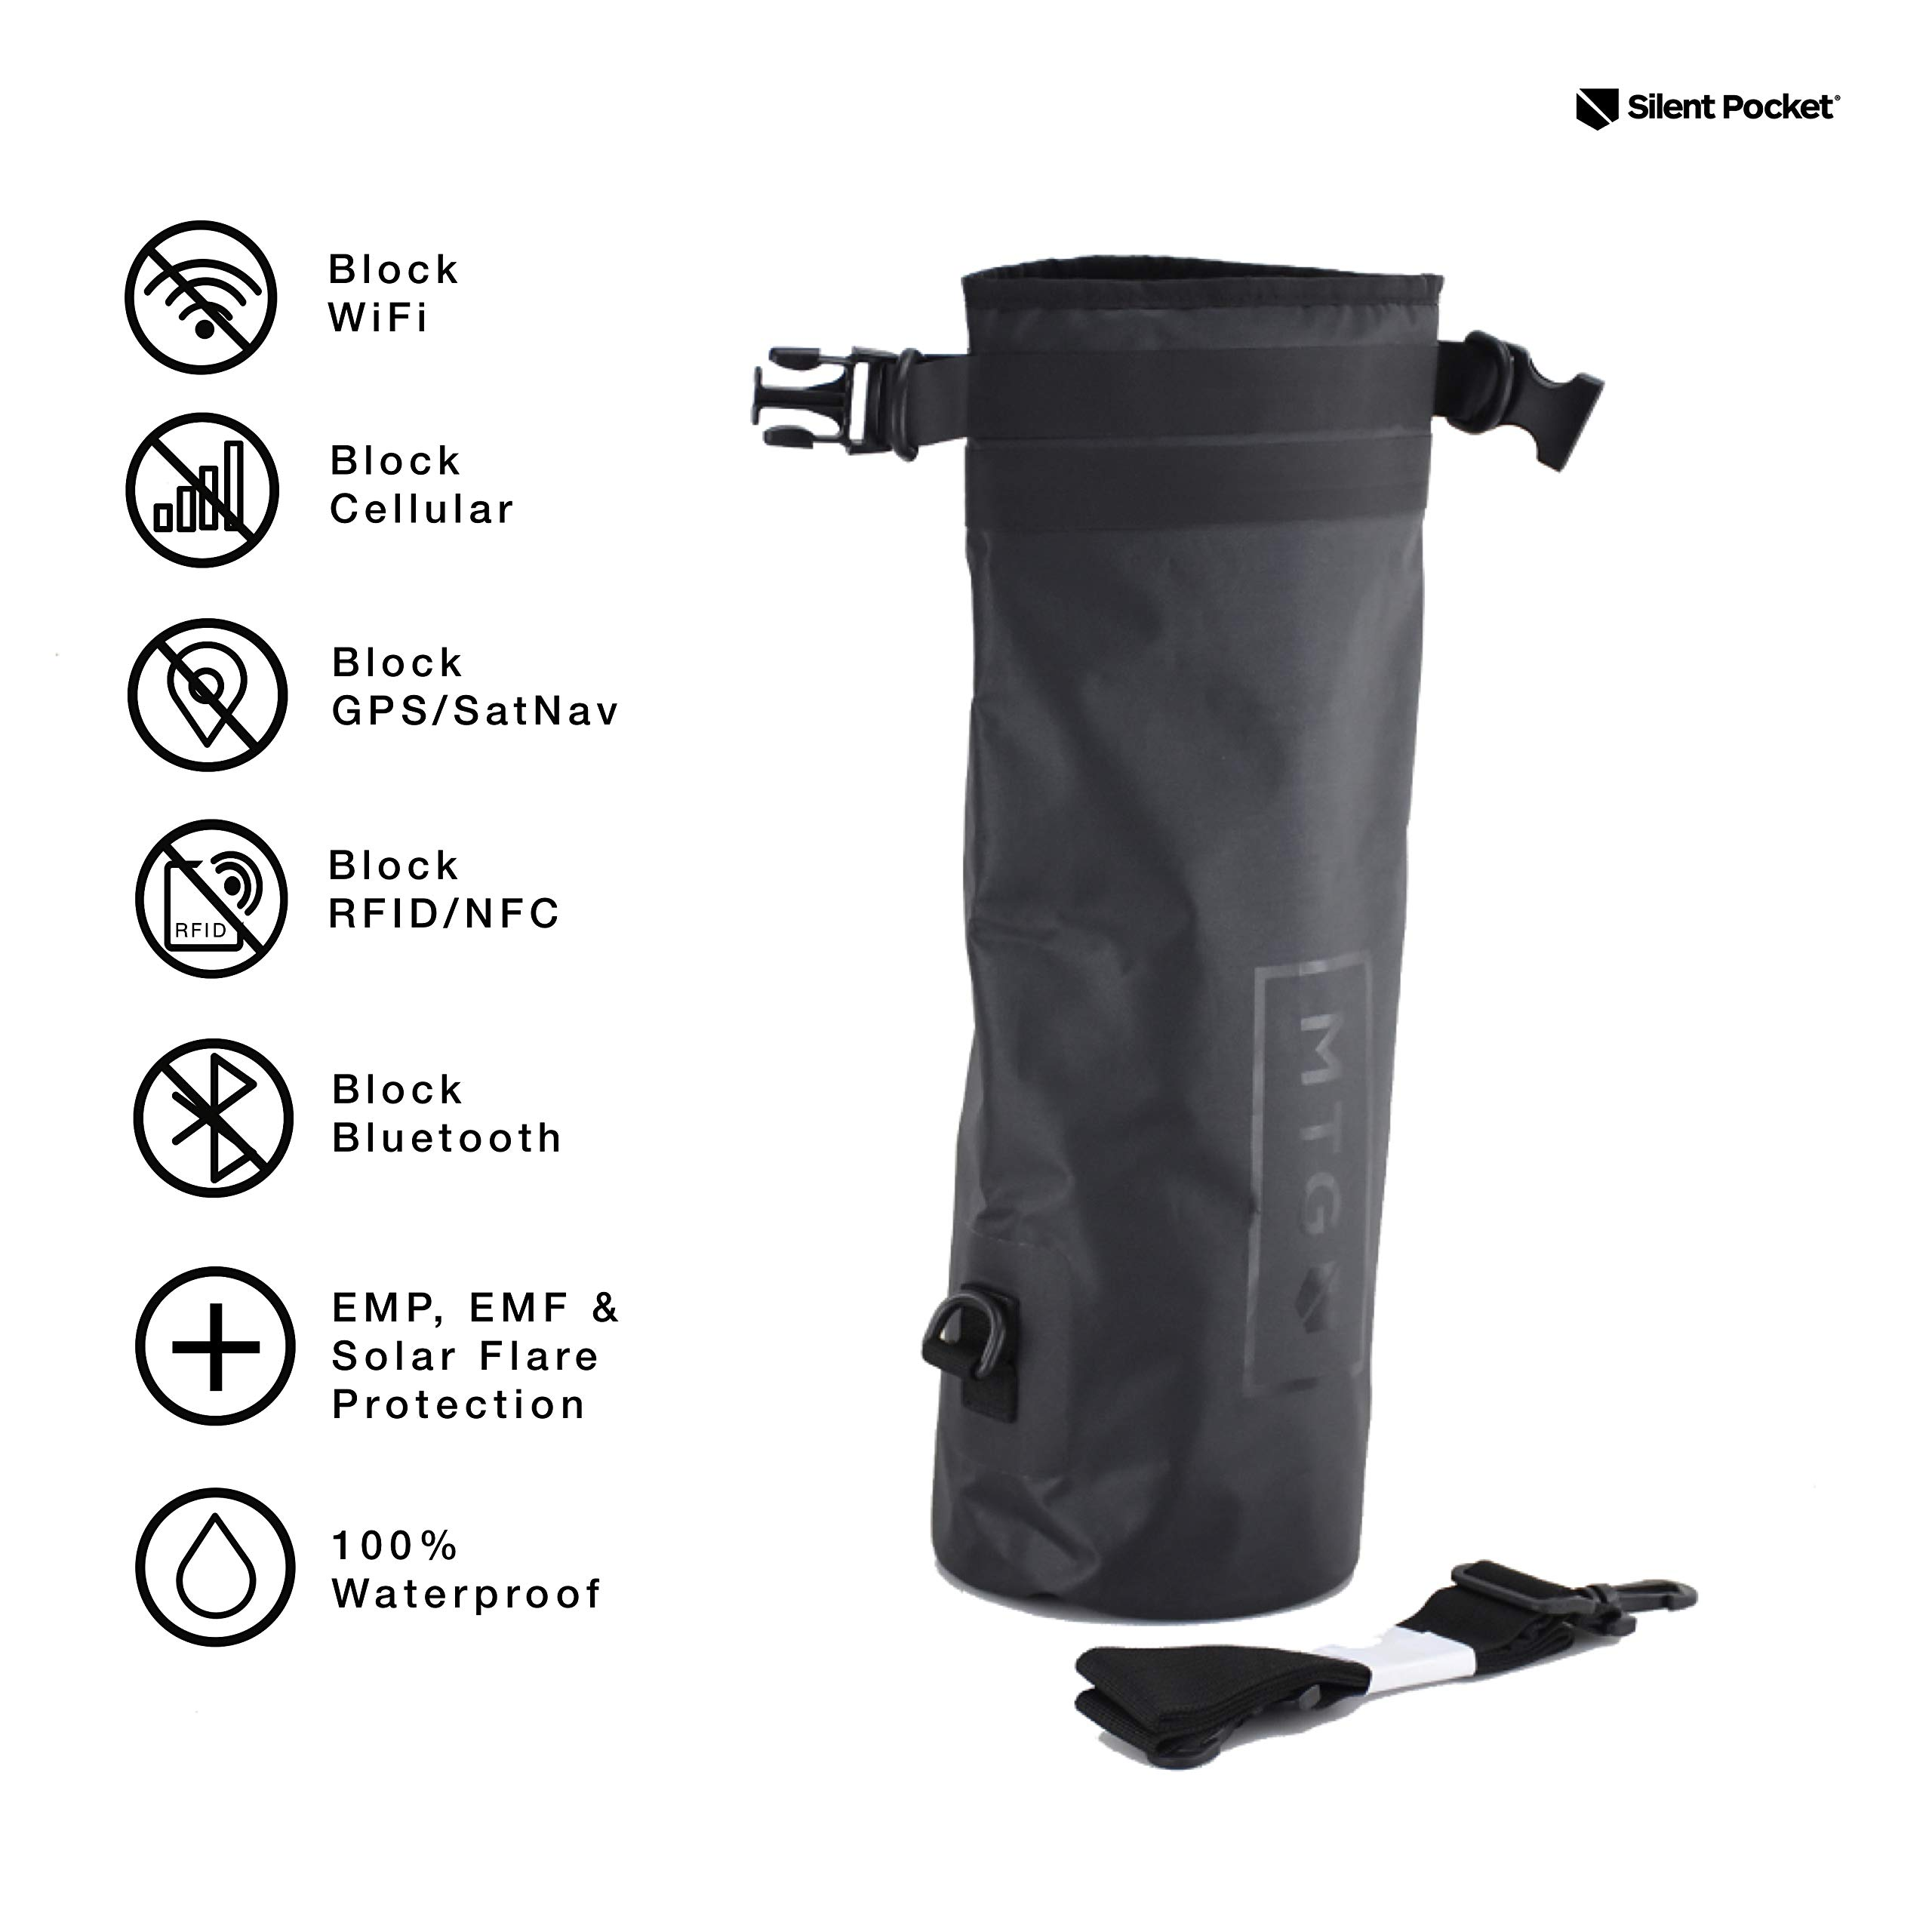 Silent Pocket Waterproof Faraday Dry Bag - Military-Grade Nylon 5 Liter Faraday Bag - RFID Signal Blocking Dry Sack/Waterproof Backpack Protects Electronics from Water, Spying, Hacking by Silent Pocket